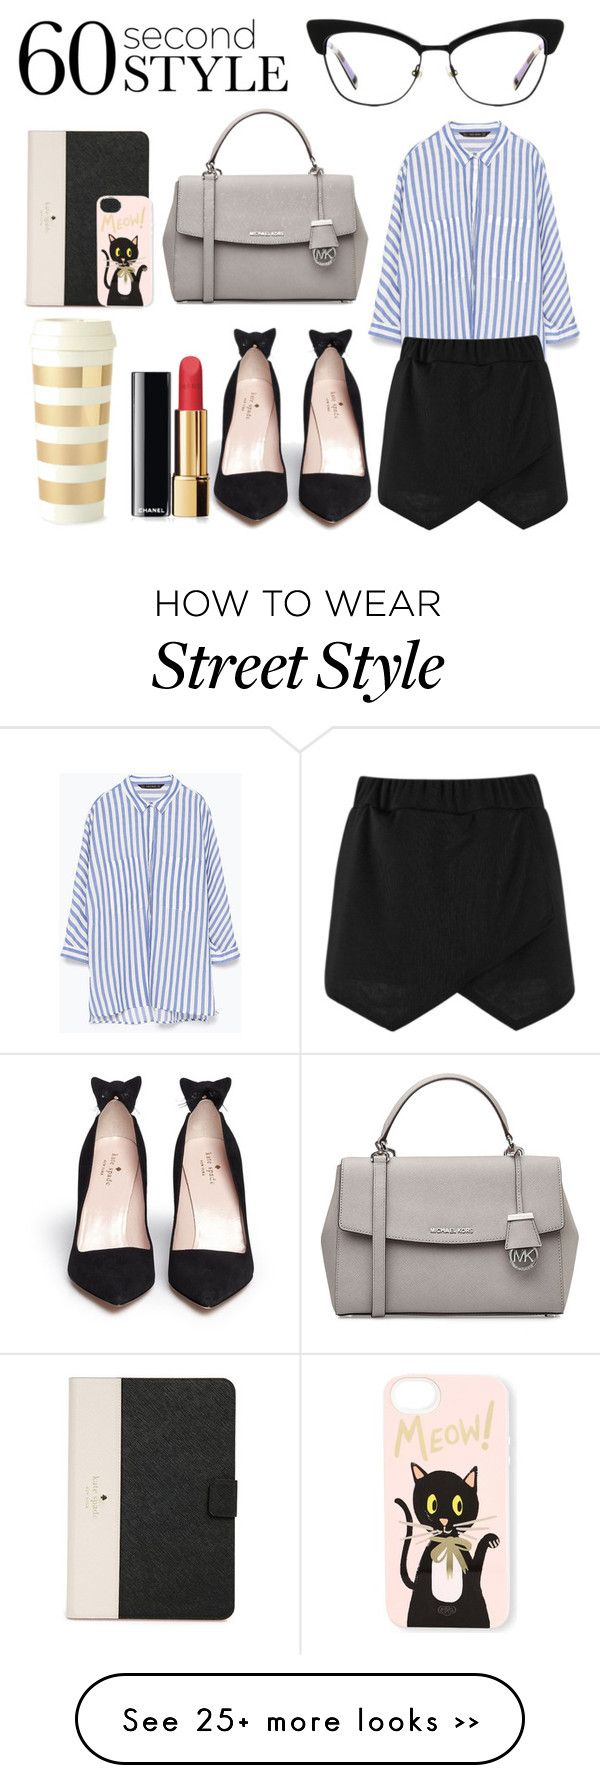 """""""Cool 'Kit' Tech Job Interview"""" by camellia-rose on Polyvore featuring Kate Spade, Zara, Boohoo, MICHAEL Michael Kors, Chanel, Rifle Paper Co and 60secondstyle"""